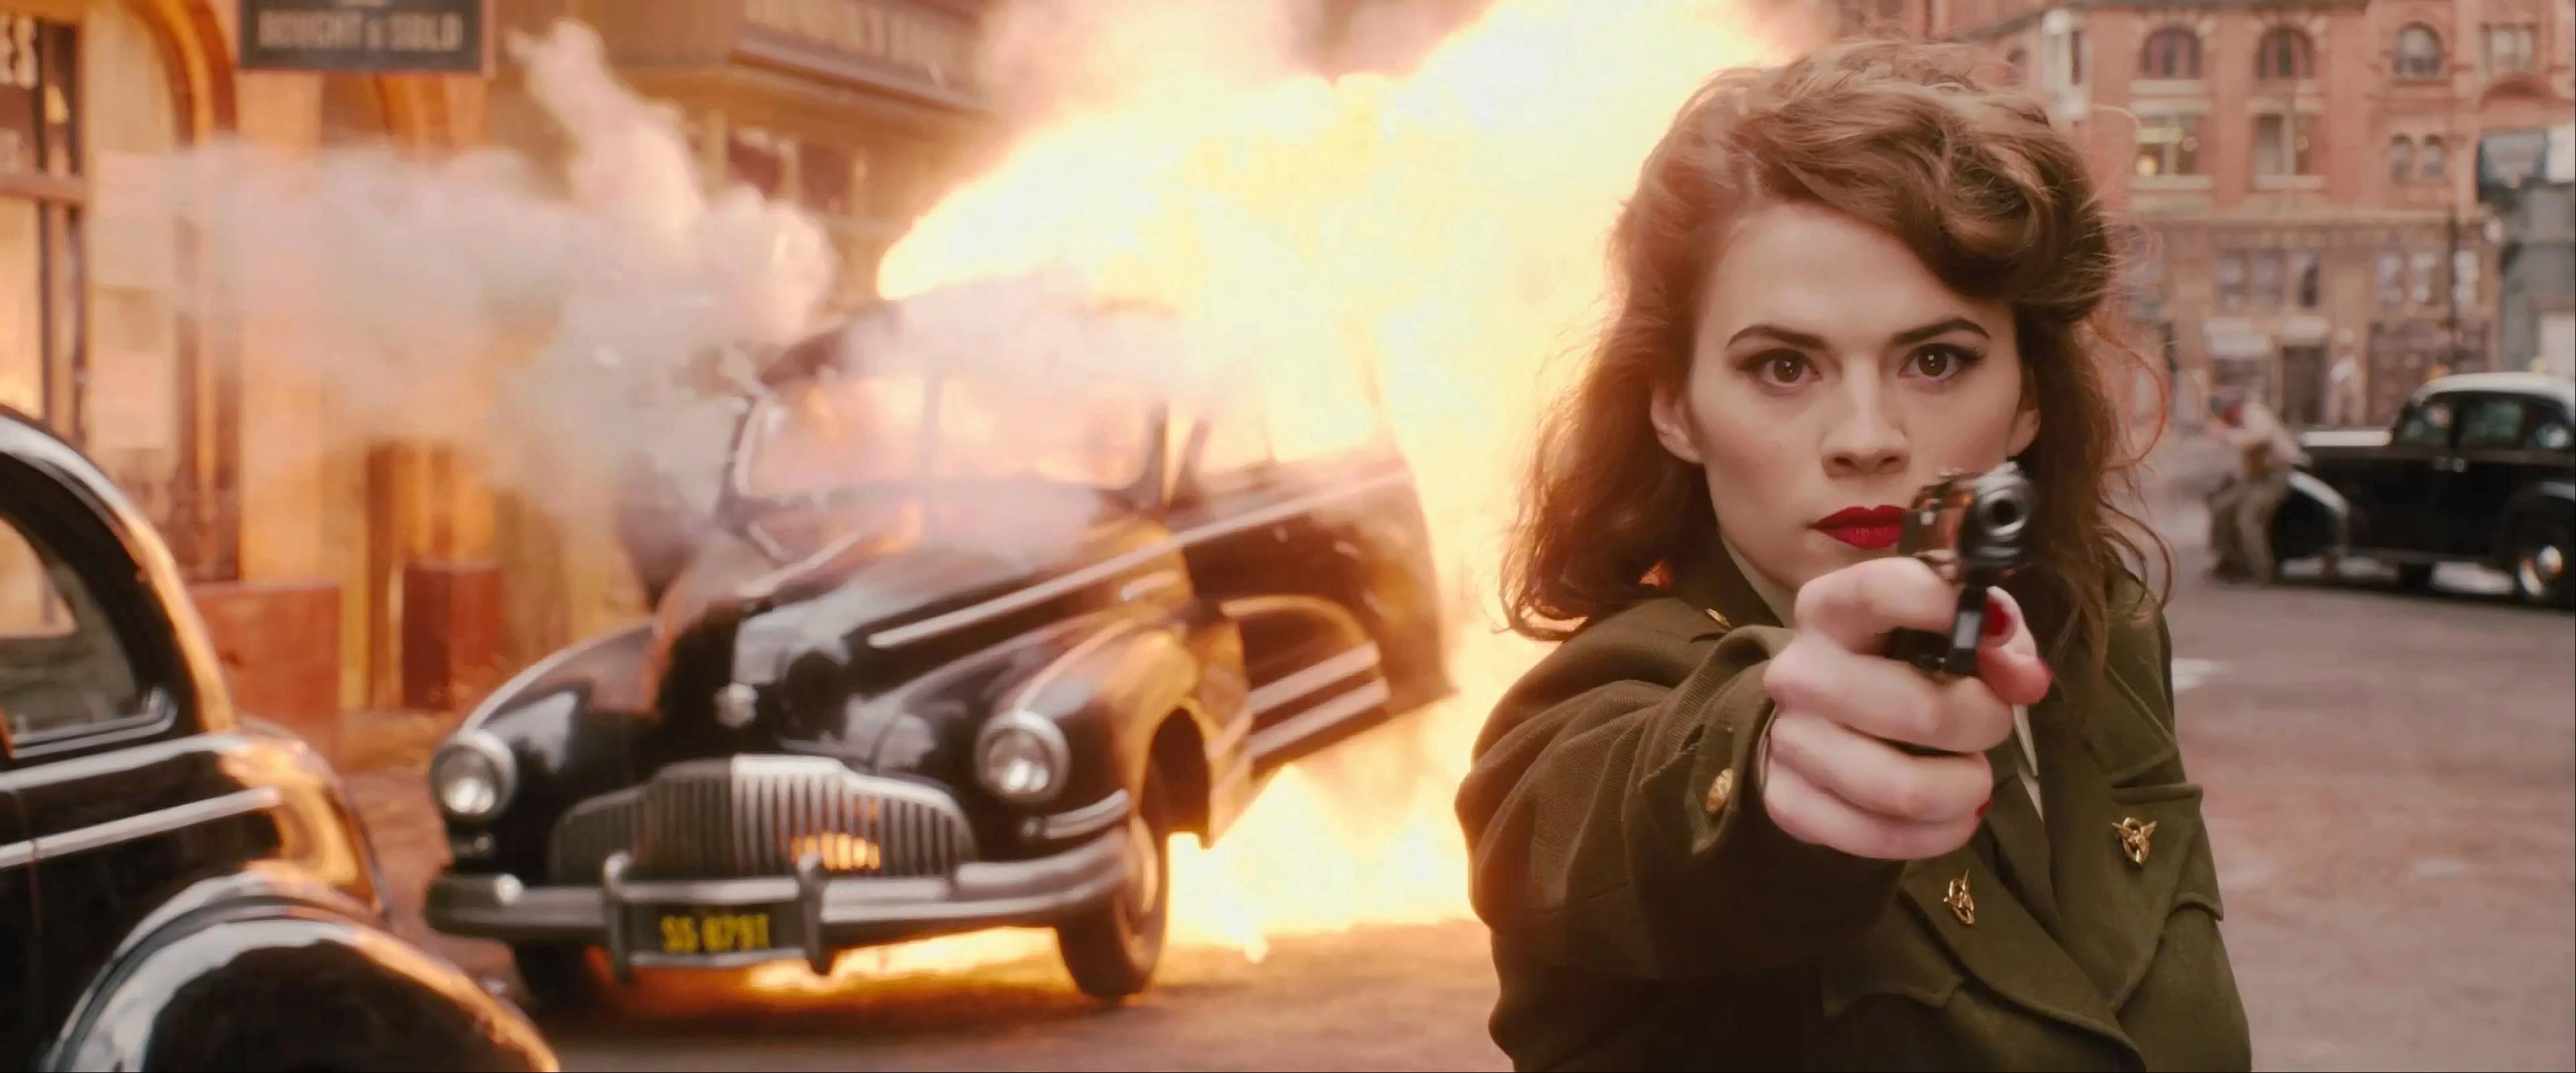 Hayley Atwell Wallpapers High Resolution and Quality Download